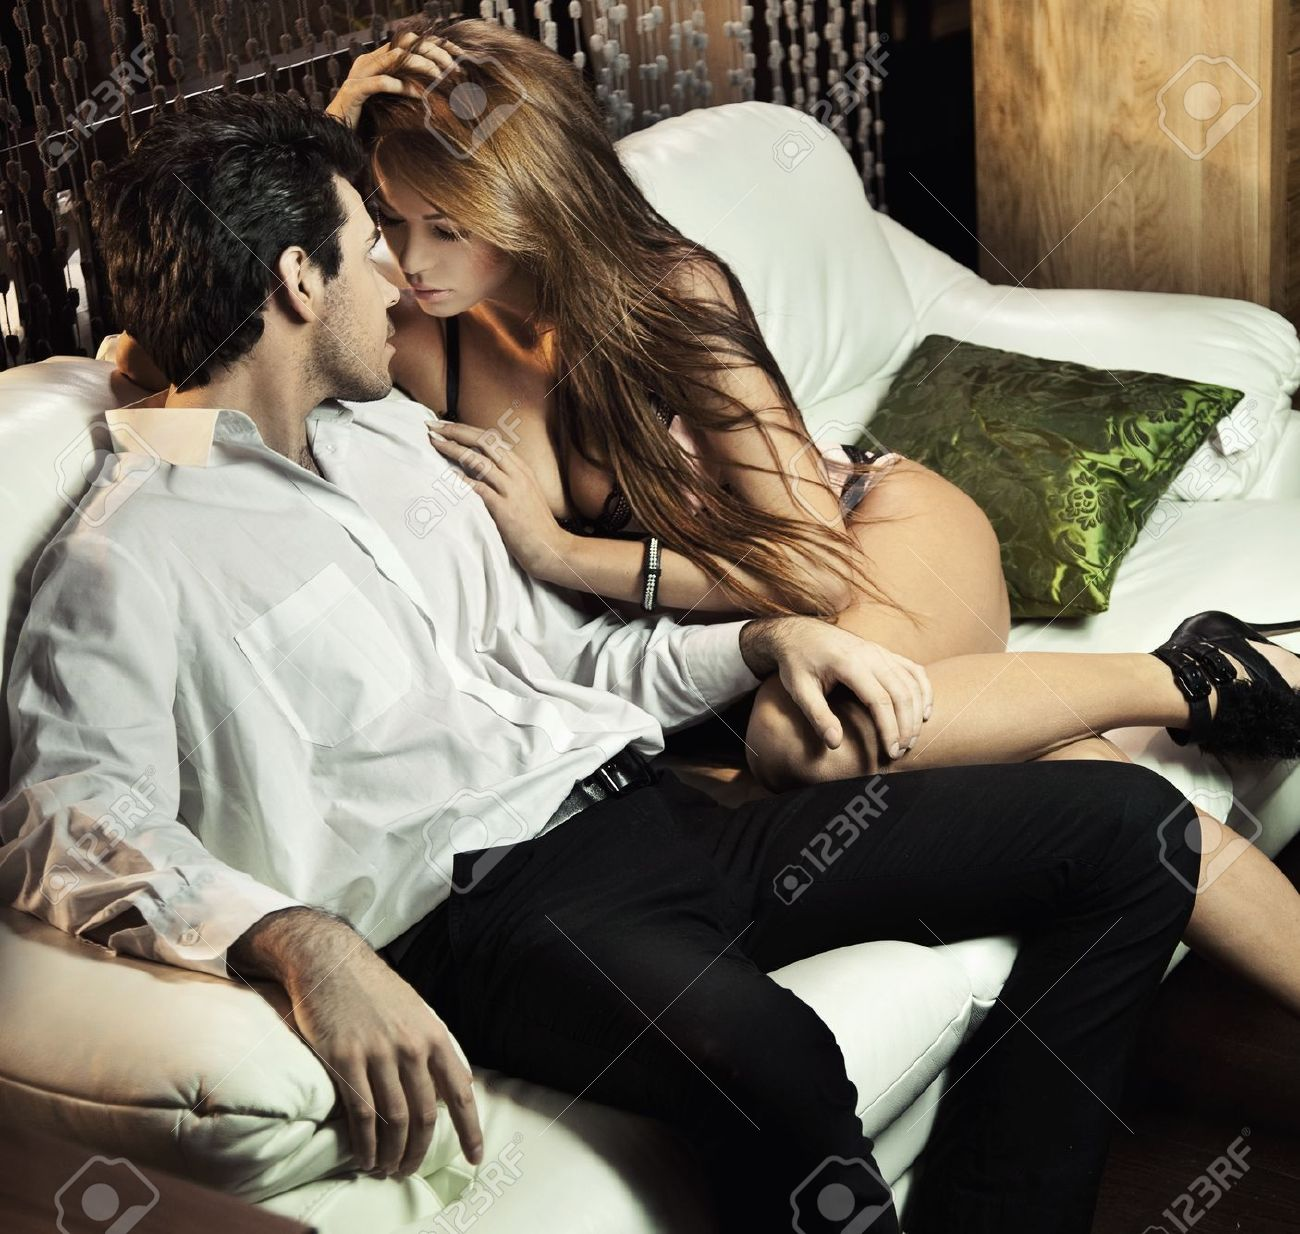 Romantic sexy couples images